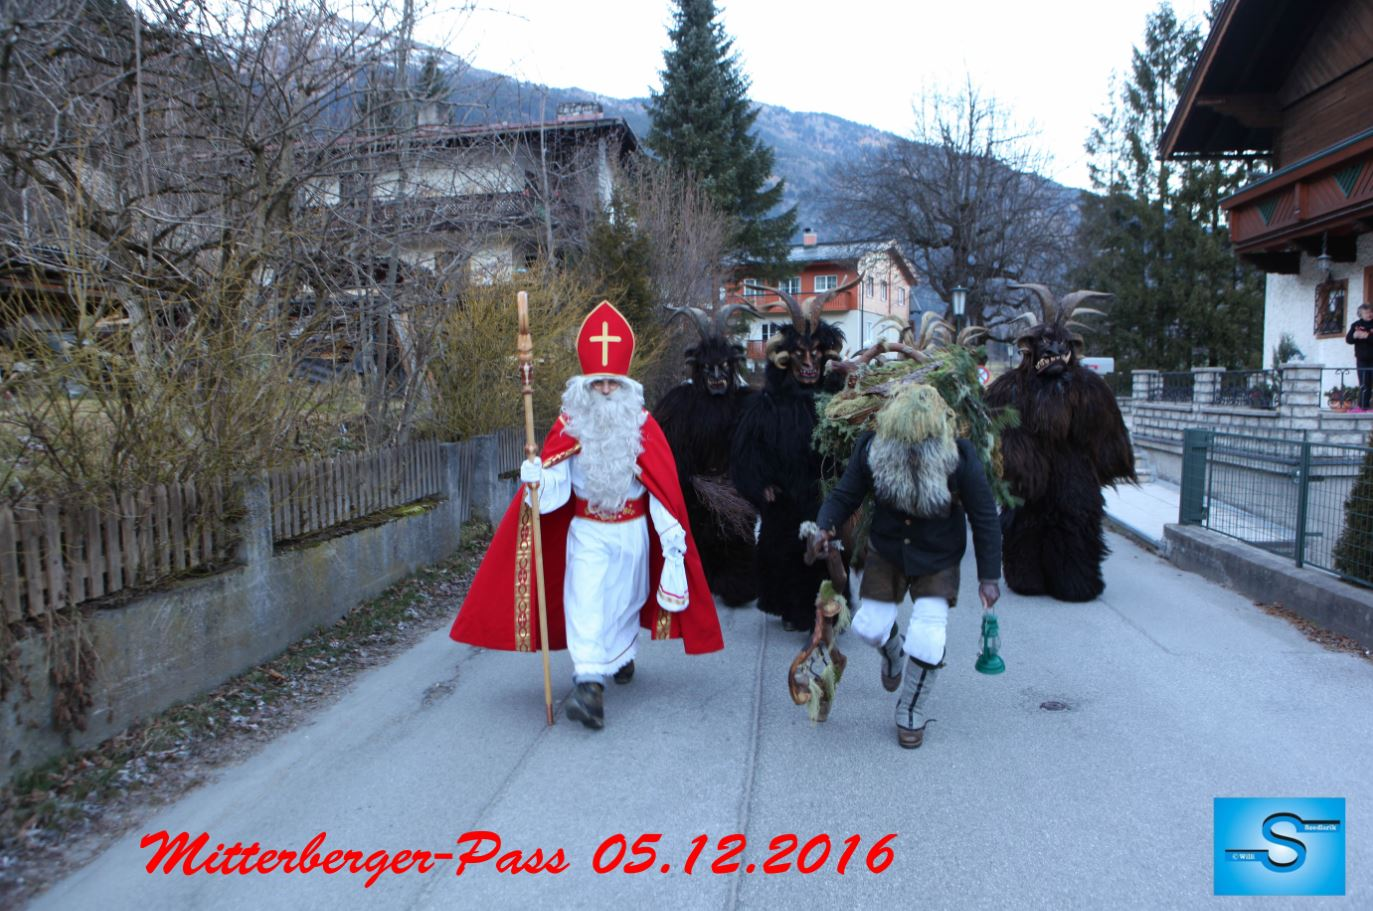 Krampuslauf in Bad Hofgastein, 2016